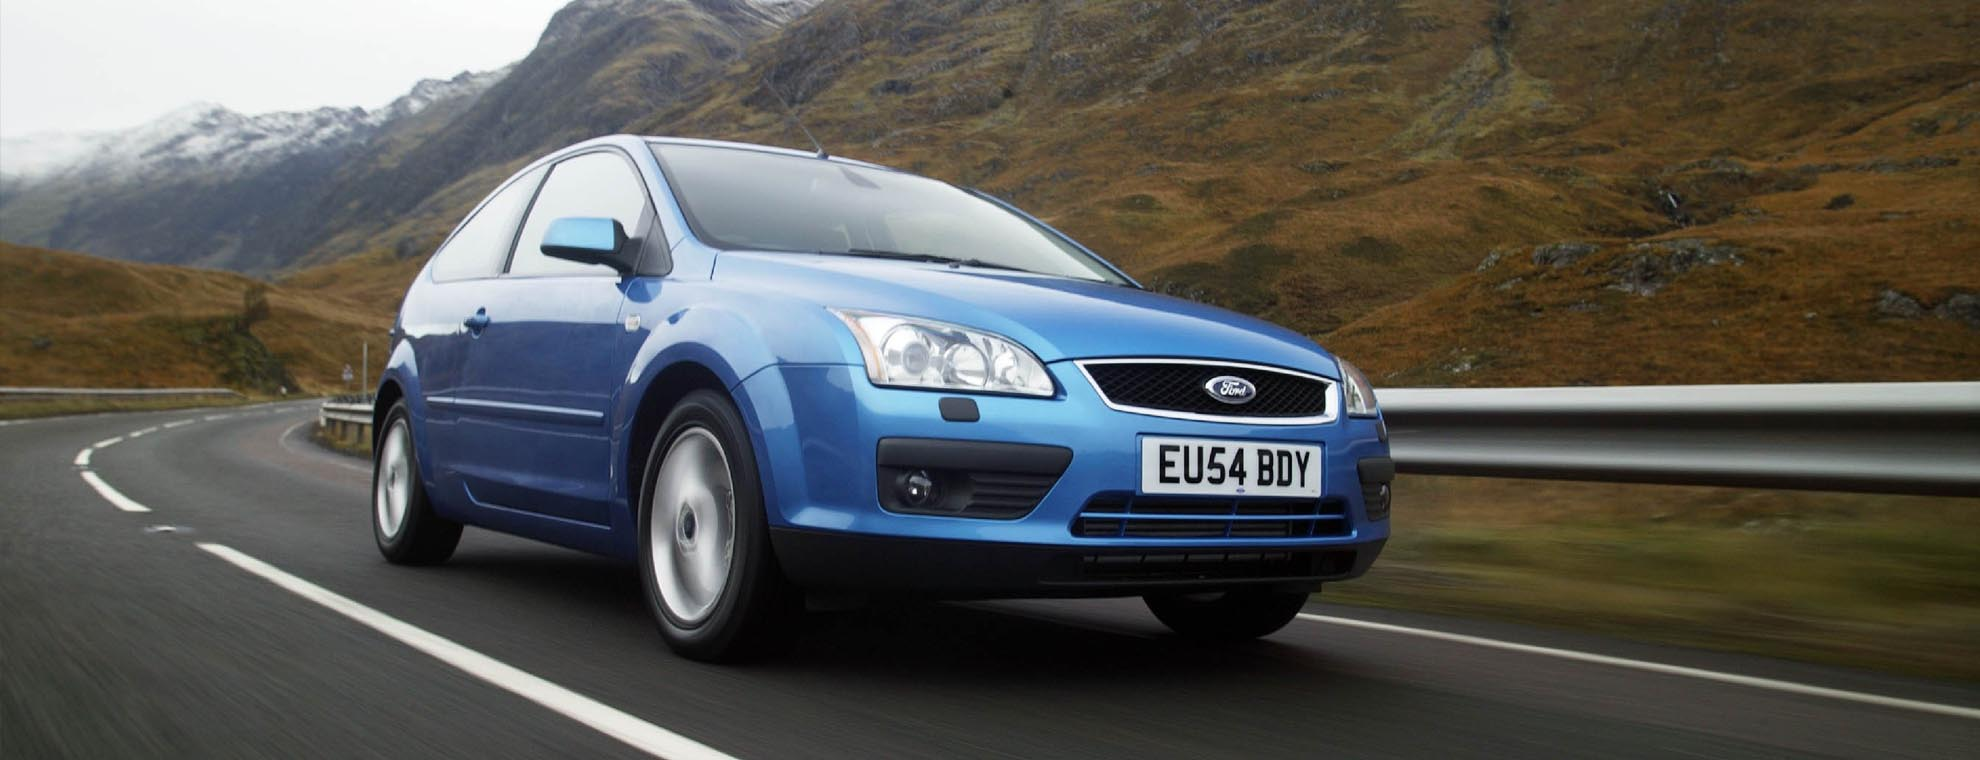 Quality Used Car Sales In Gloucester Gloucestershire Great